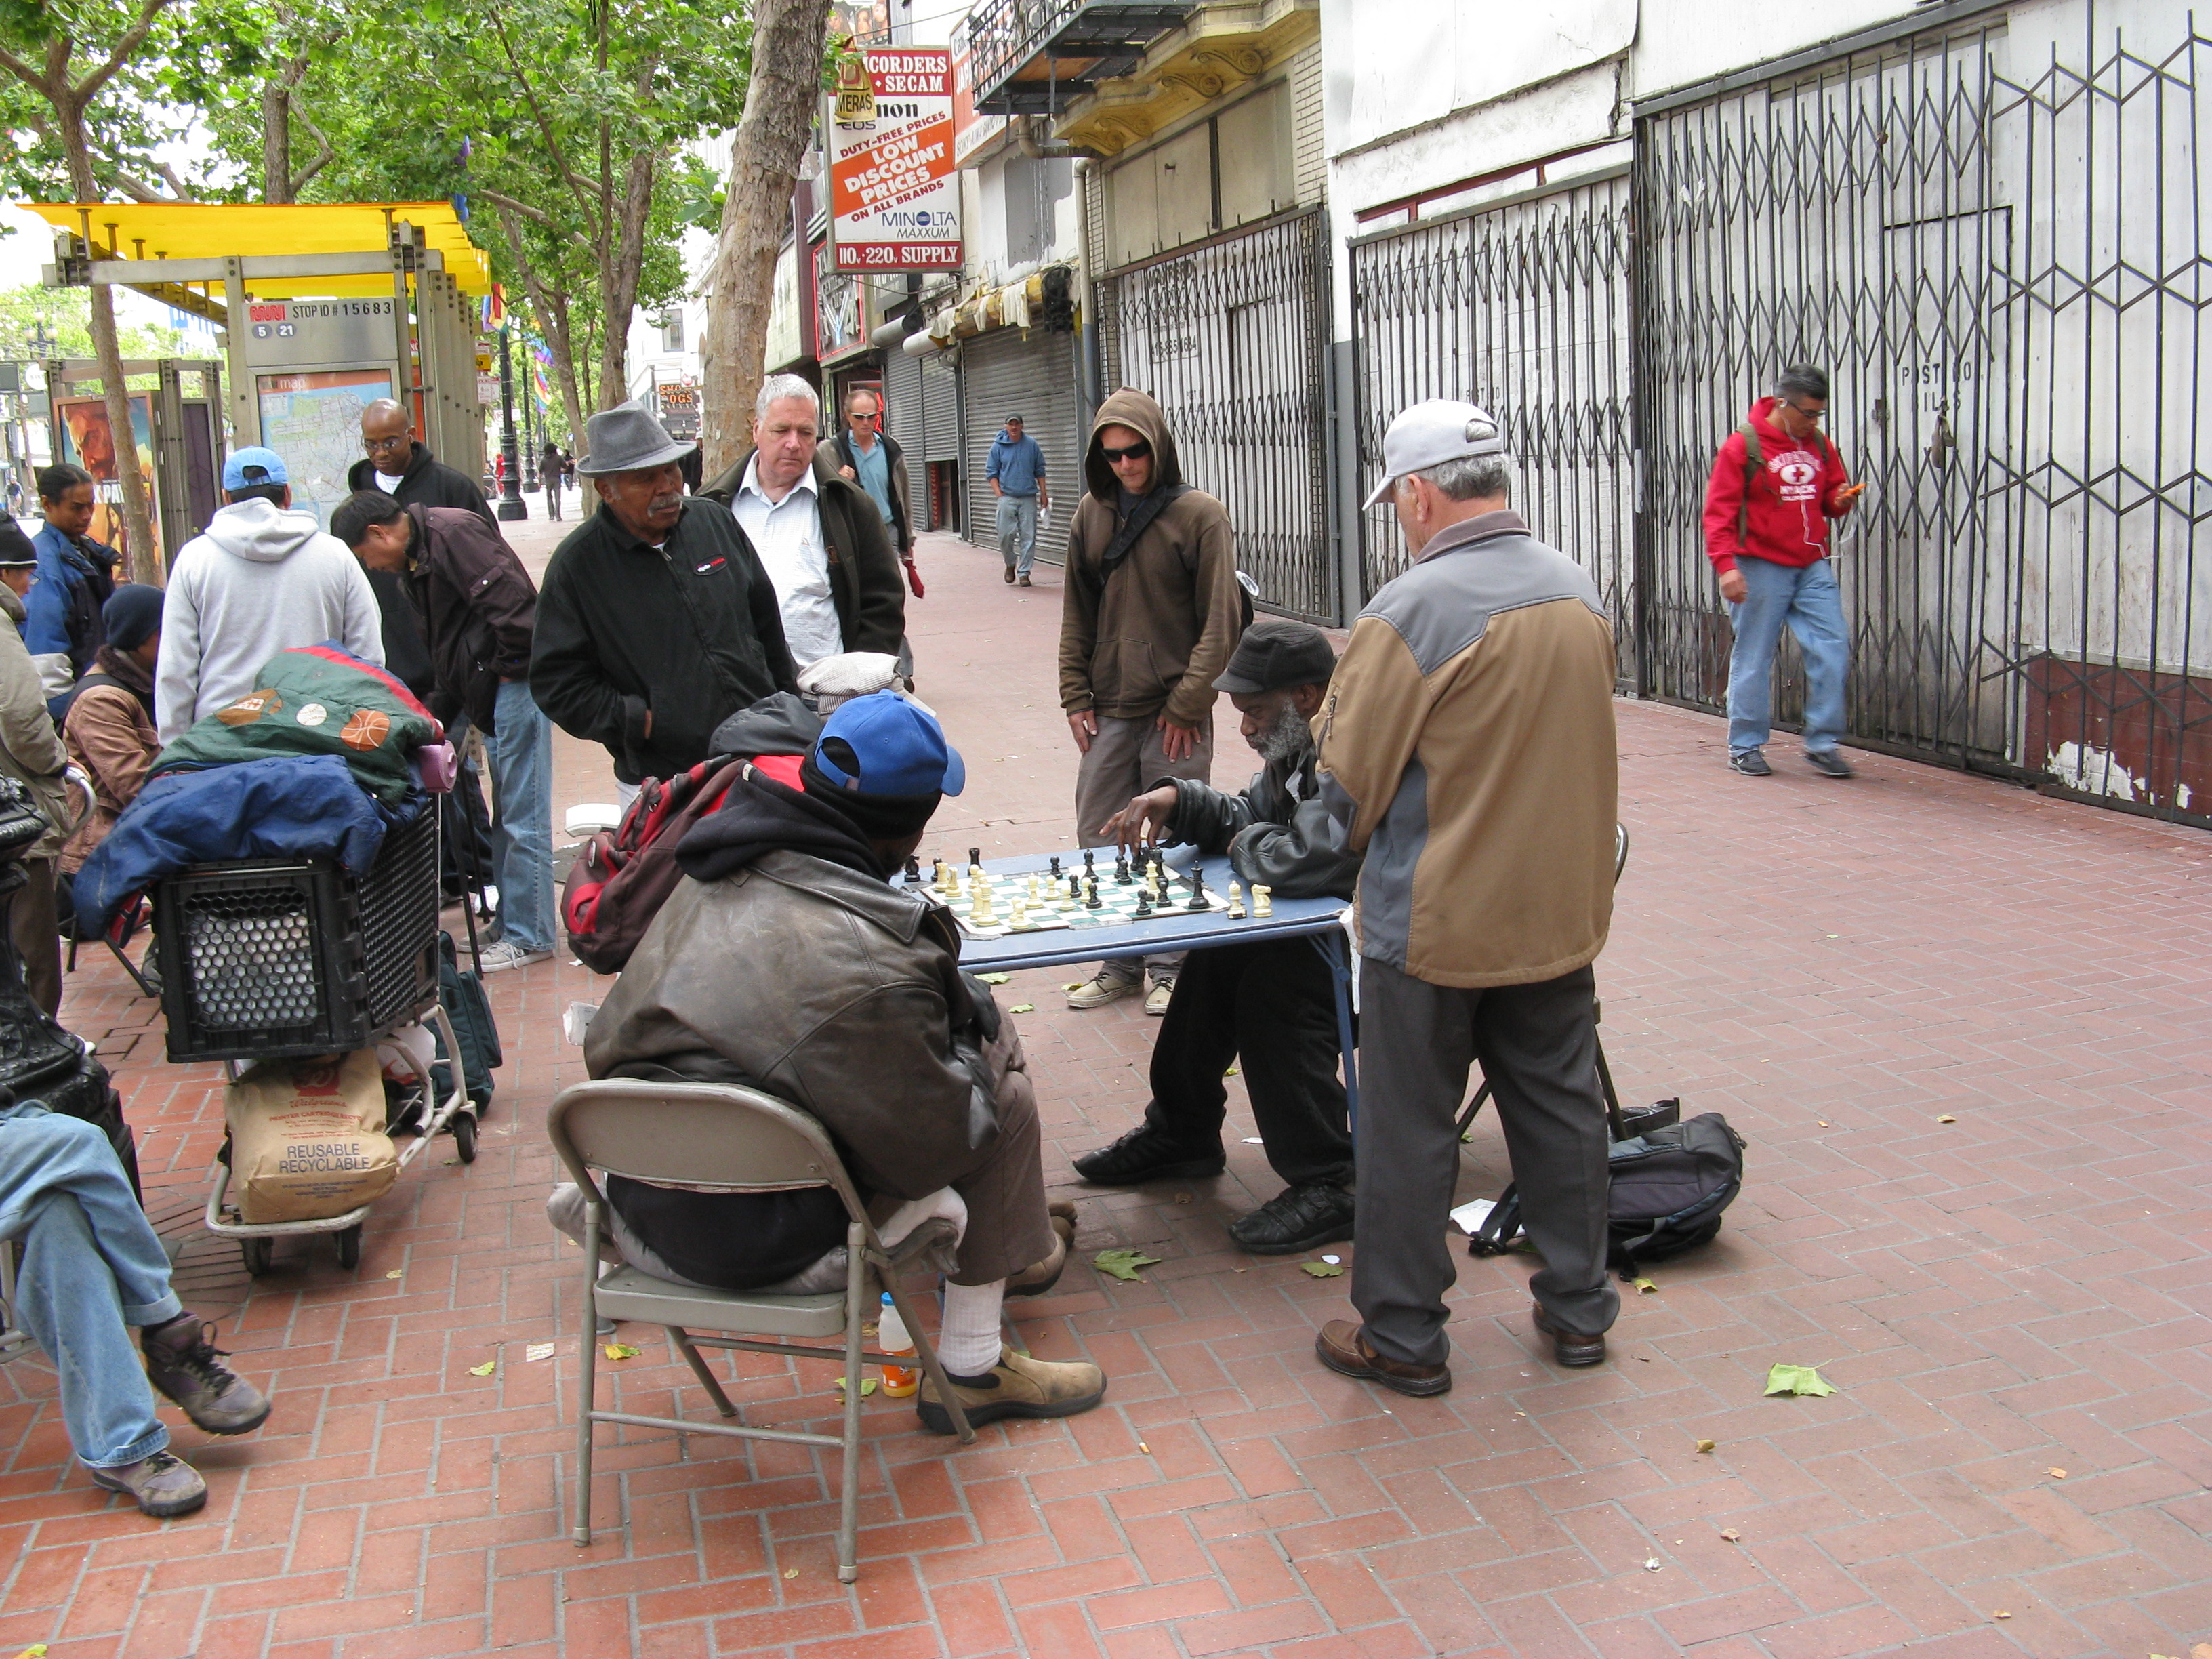 People playing chess in the street in Tenderloin, San Franciso